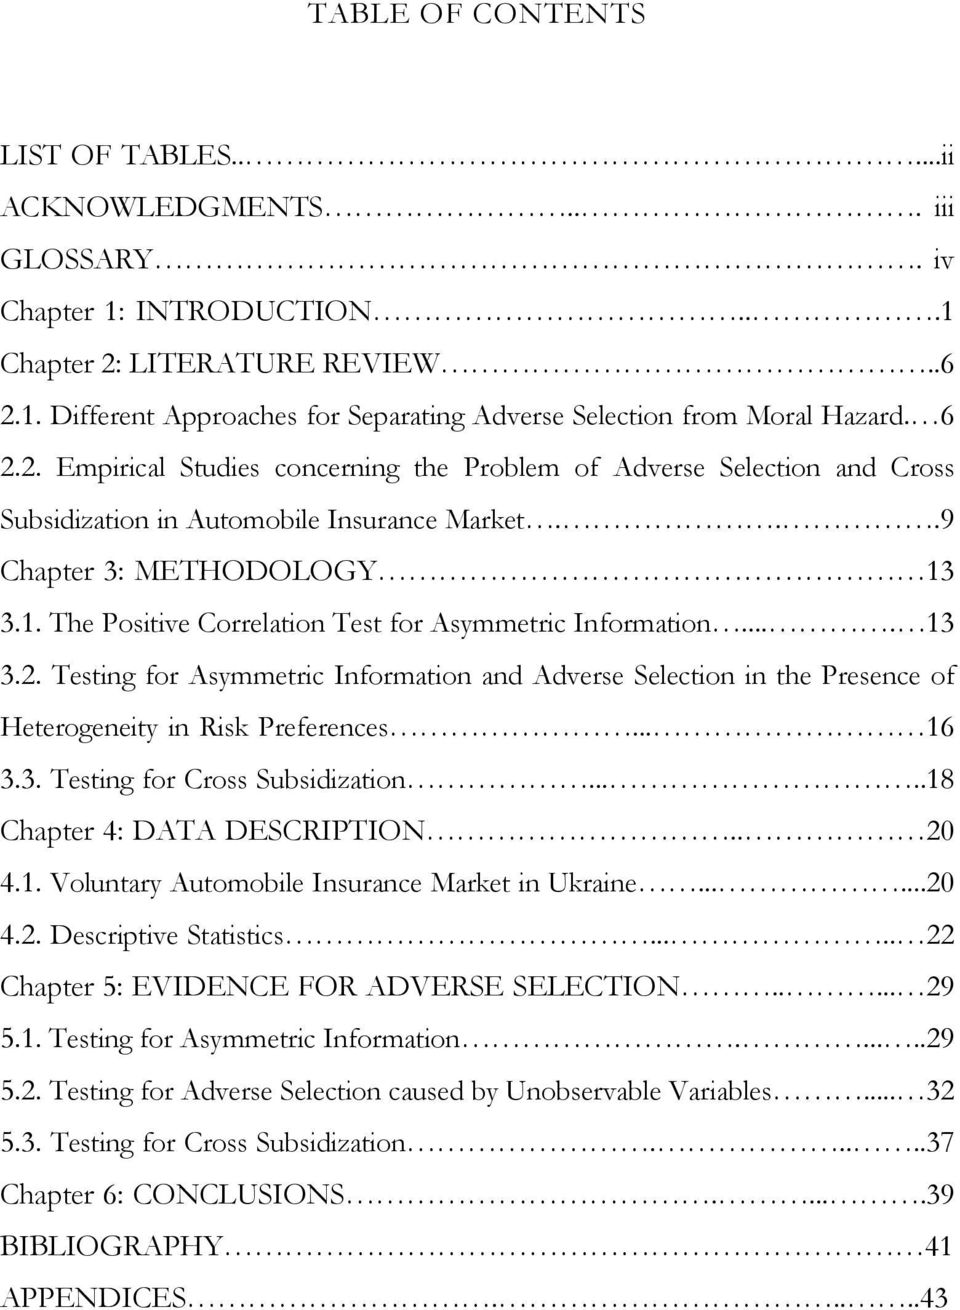 ... 13 3.2. Testng for Asymmetrc Informaton and Adverse Selecton n the Presence of Heterogenety n Rsk Preferences... 16 3.3. Testng for Cross Subsdzaton.....18 Chapter 4: DATA DESCRIPTION.. 20 4.1. Voluntary Automoble Insurance Market n Ukrane.